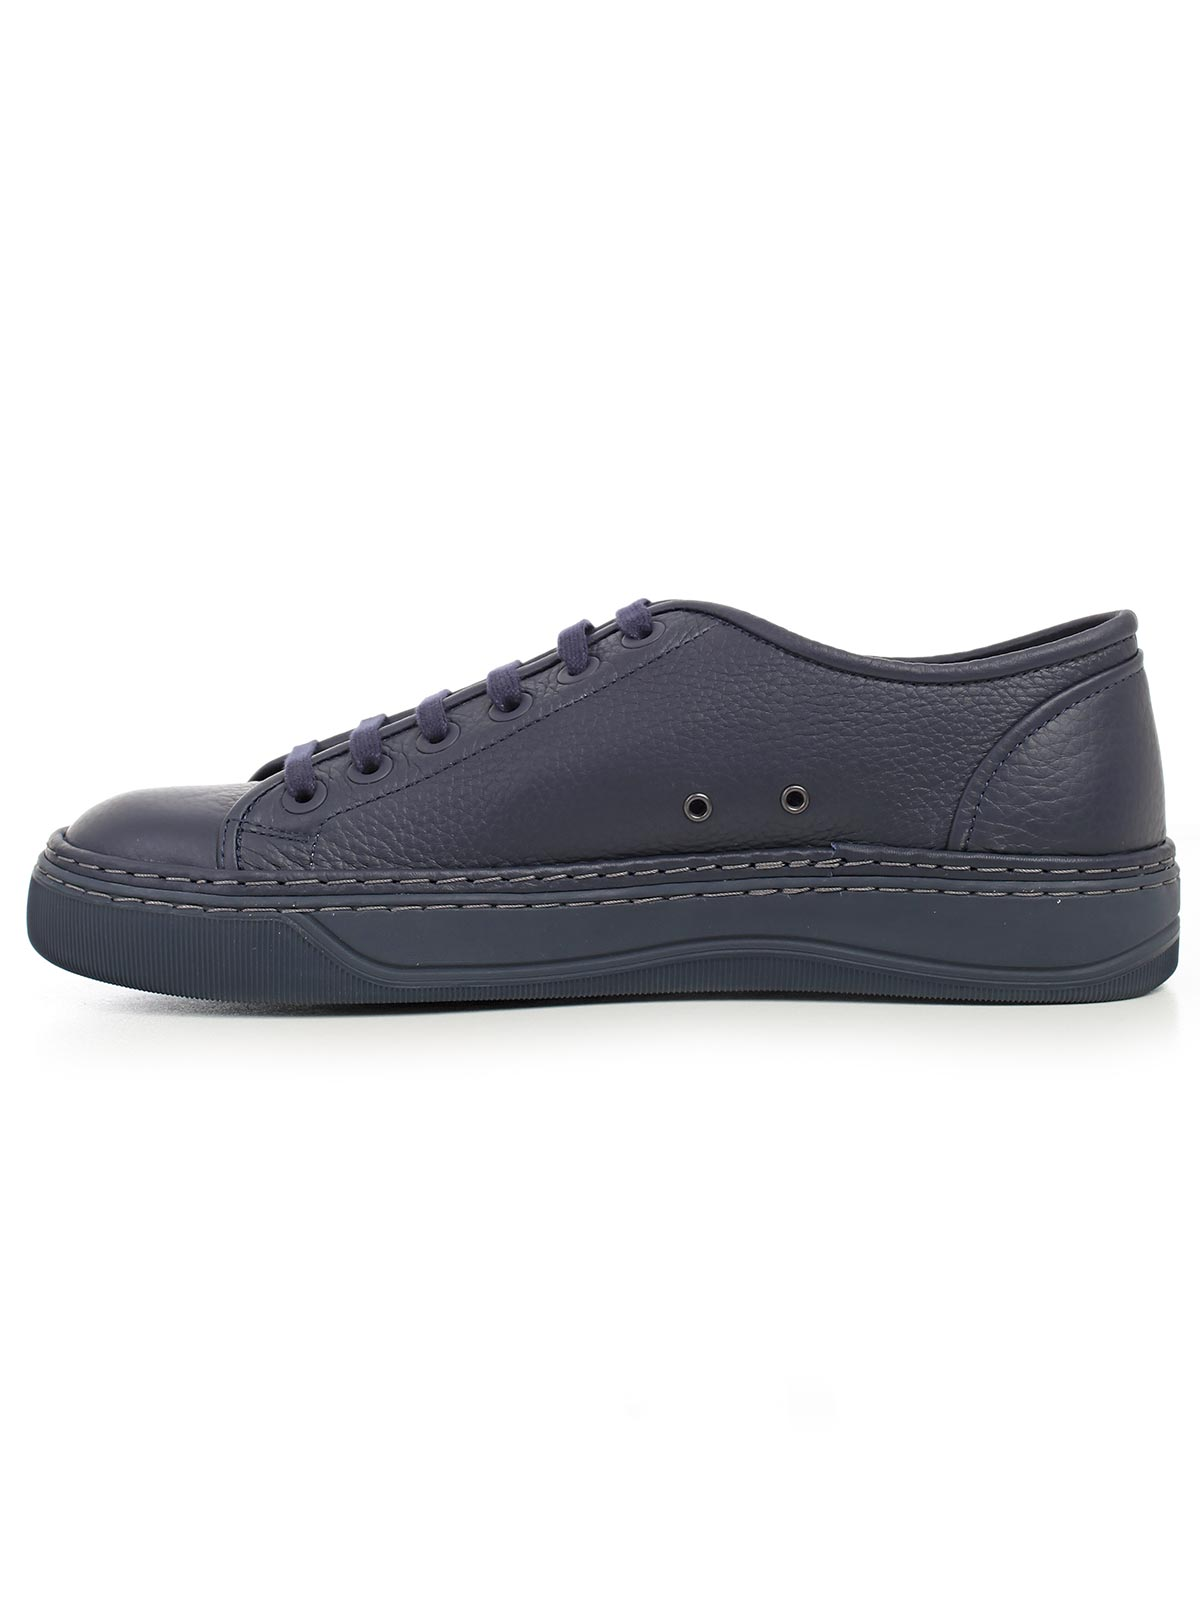 Picture of Lanvin Sneakers